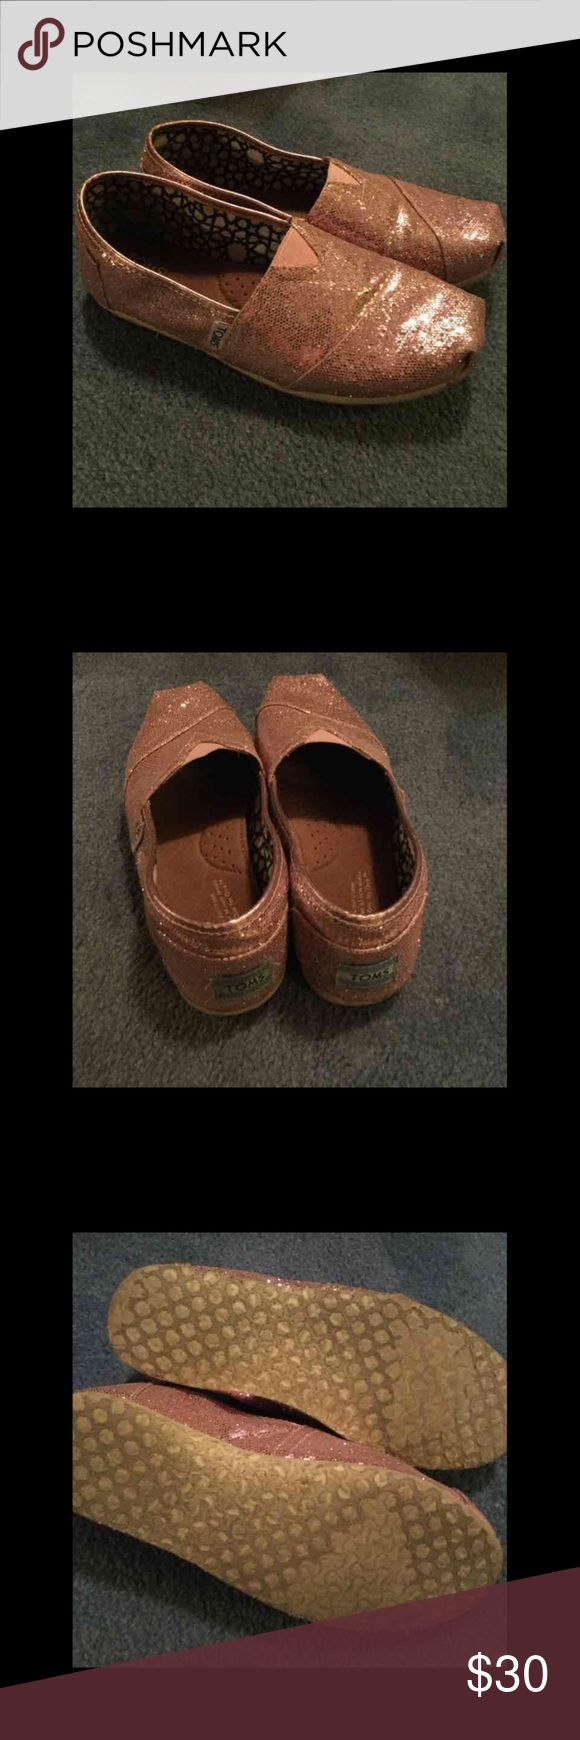 TOMS Pink Glitter Shoes Pink Glitter Toms, Size 7W (BLACK LISTED SEPARATELY). Good used condition - see photos for usage TOMS Shoes Flats & Loafers